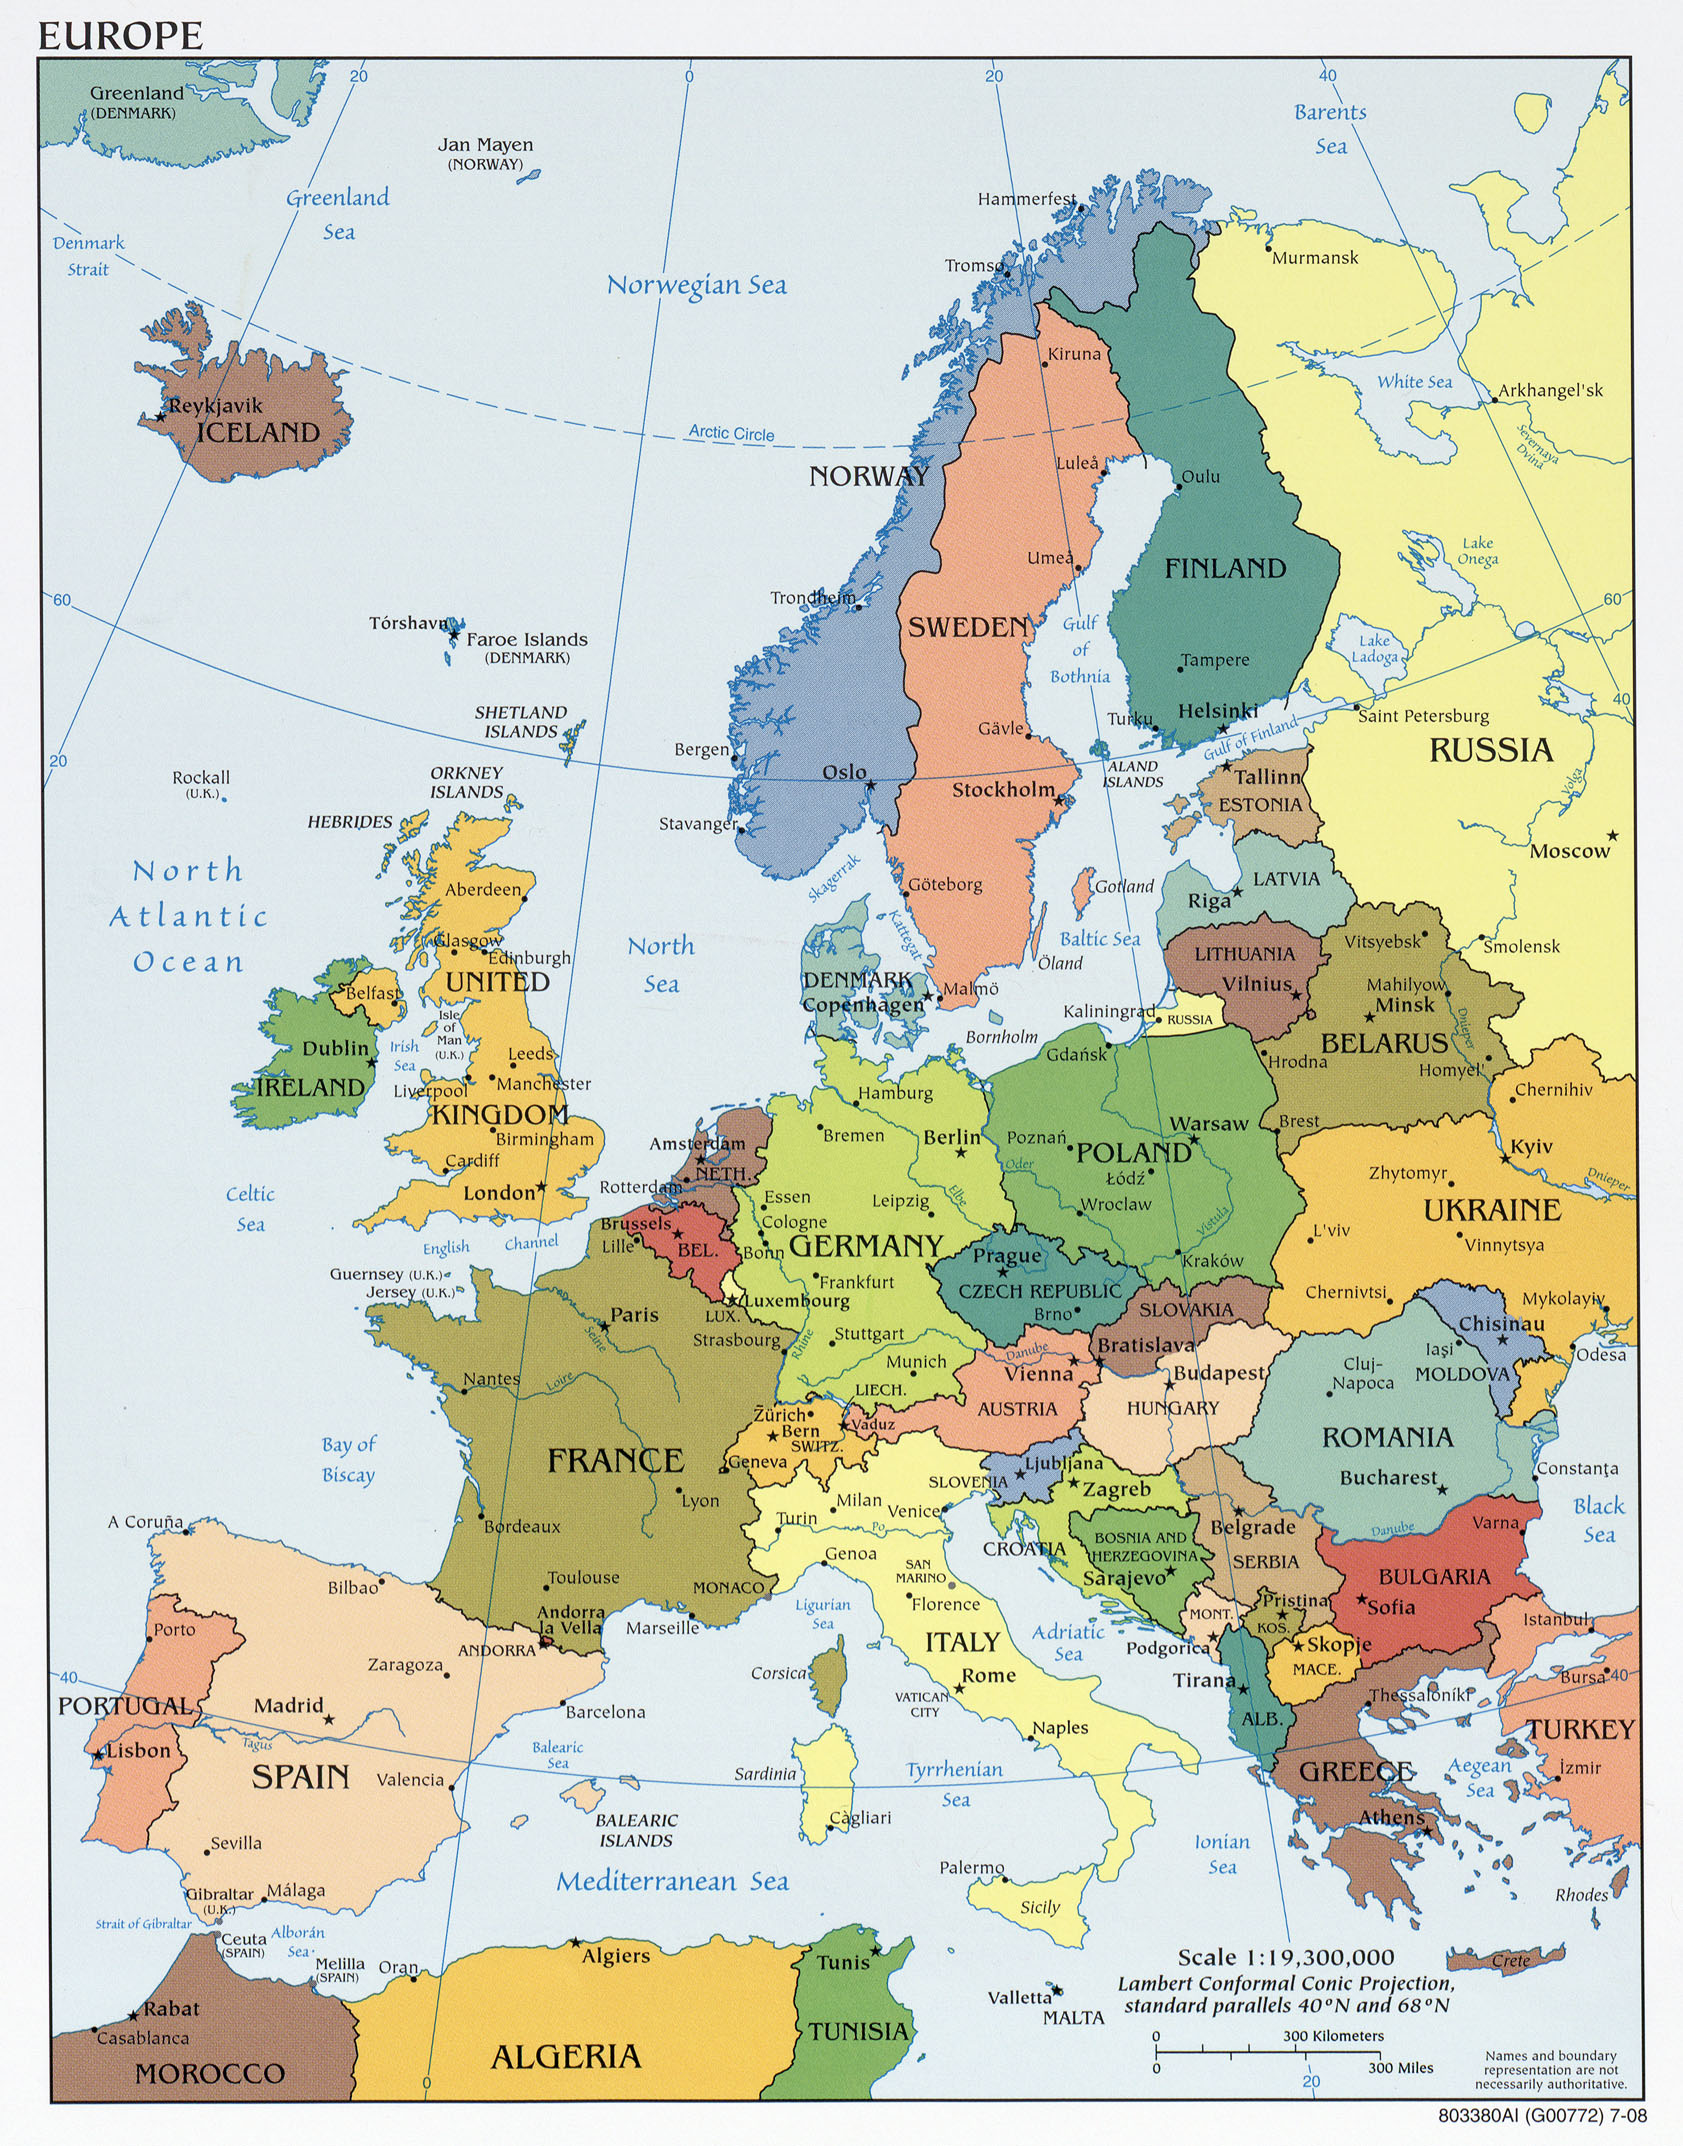 Where Is Germany On The Map Of Europe.Where Is Germany Located